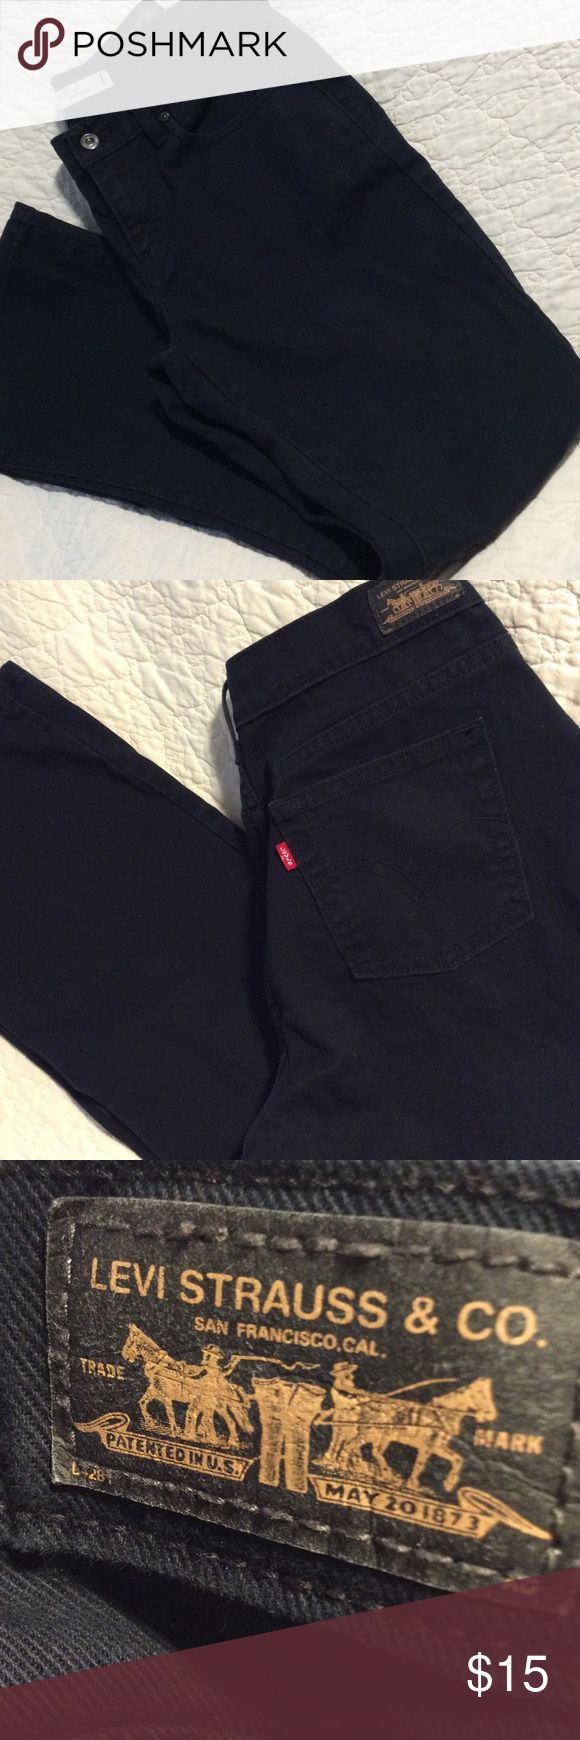 LEVI STRAUSS & CO. black jeans. Size 6, long. LEVI STRAUSS & CO. black jeans. Size 6, long. Boot cut.  Worn once.  No flaws to note.  Bundle for discounts.  Thanks, D @ updates Levi Strauss Jeans Boot Cut